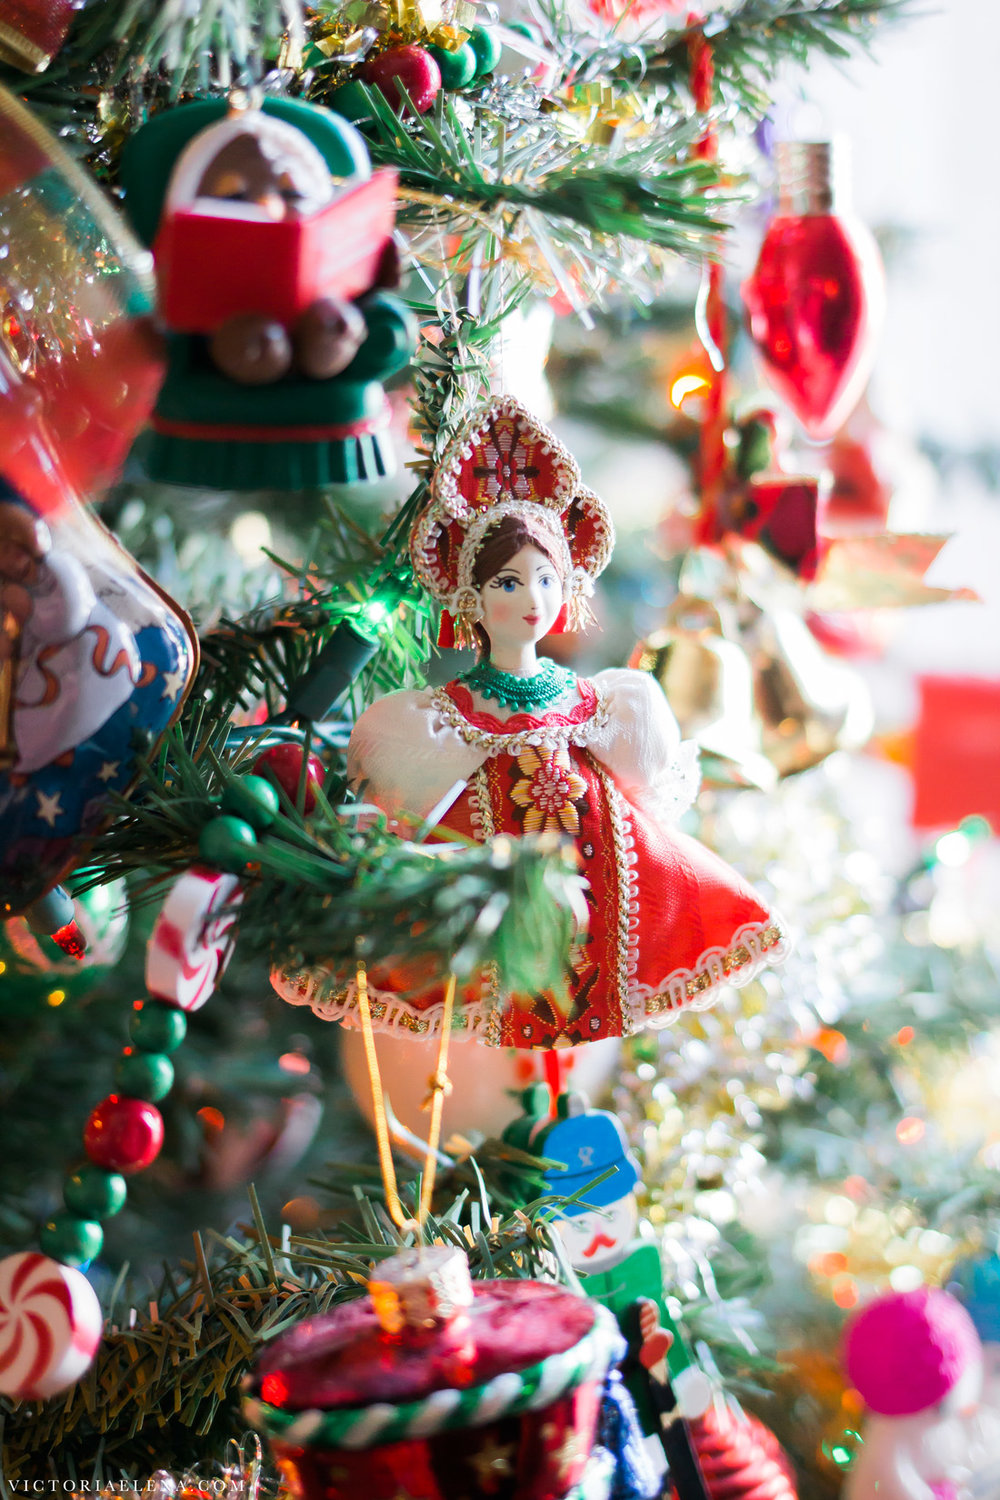 w-moms-christmas-ornaments-by-victoria-elena-24.jpg